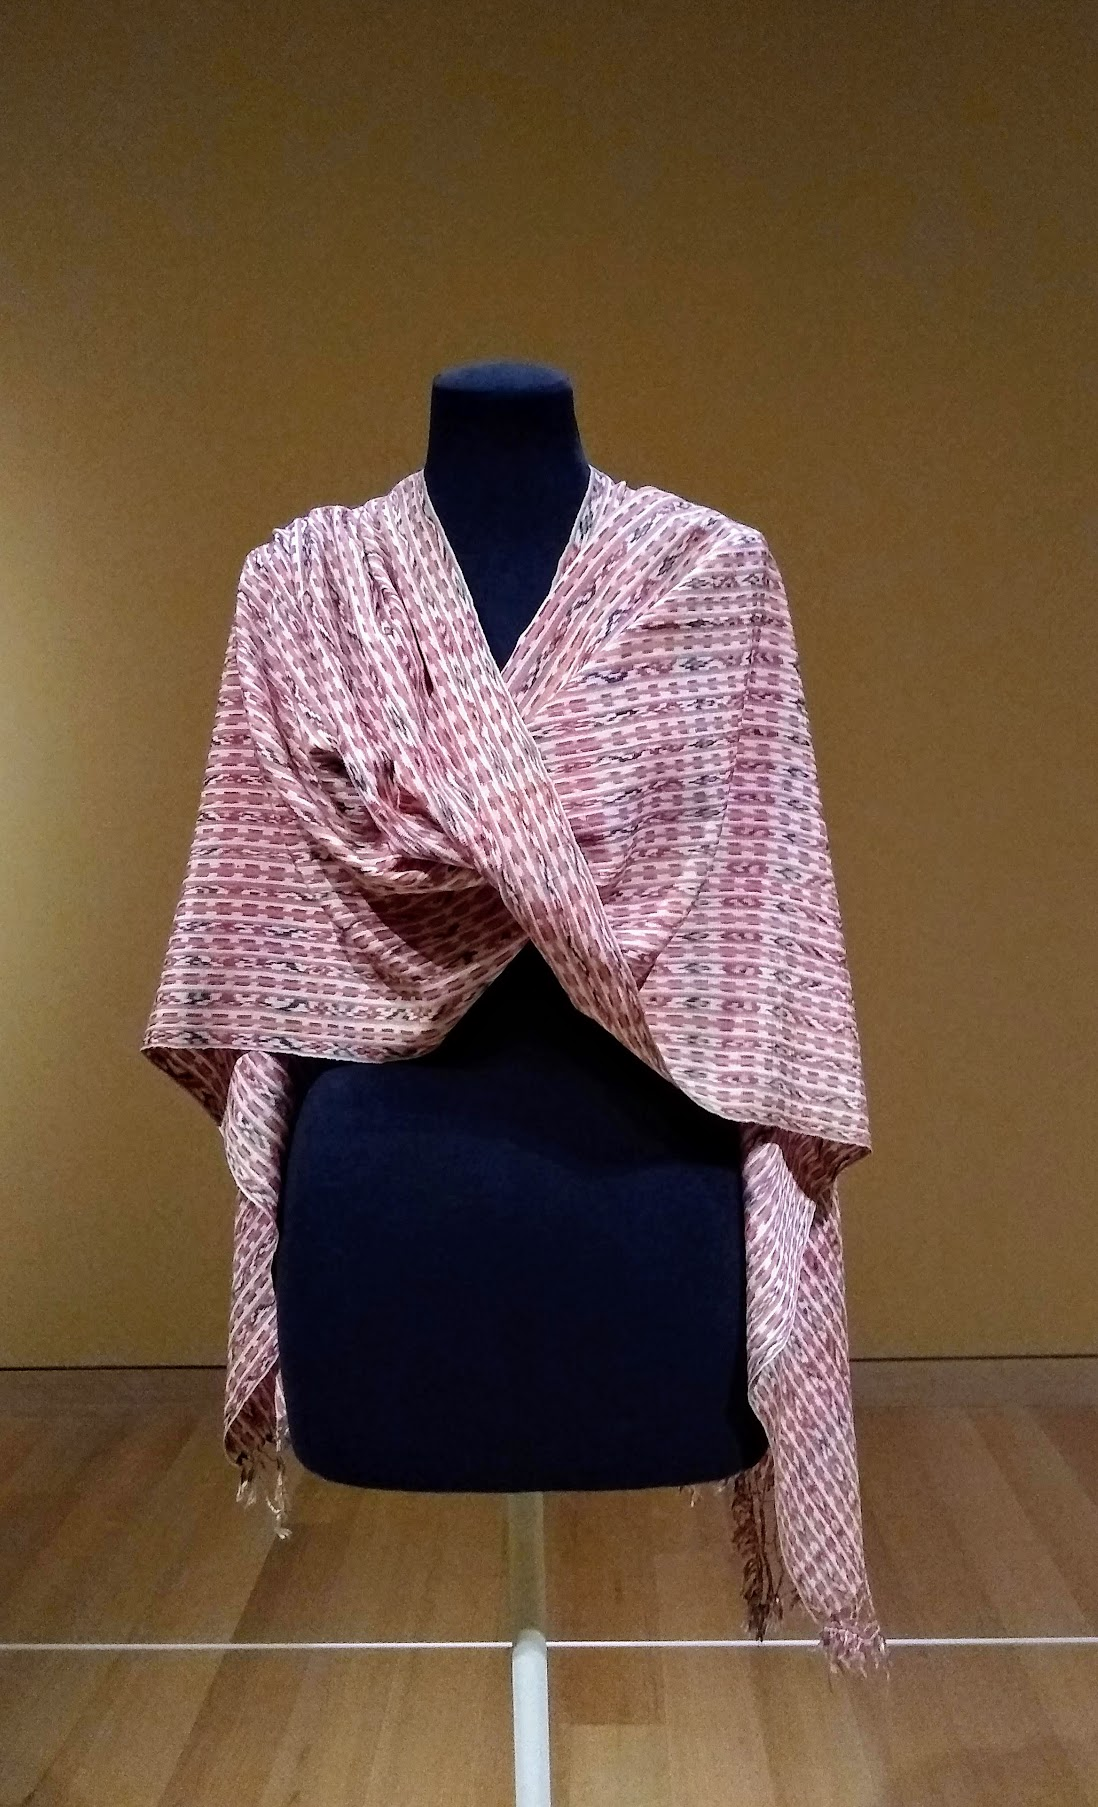 Rebozo similar to one Frida would have worn